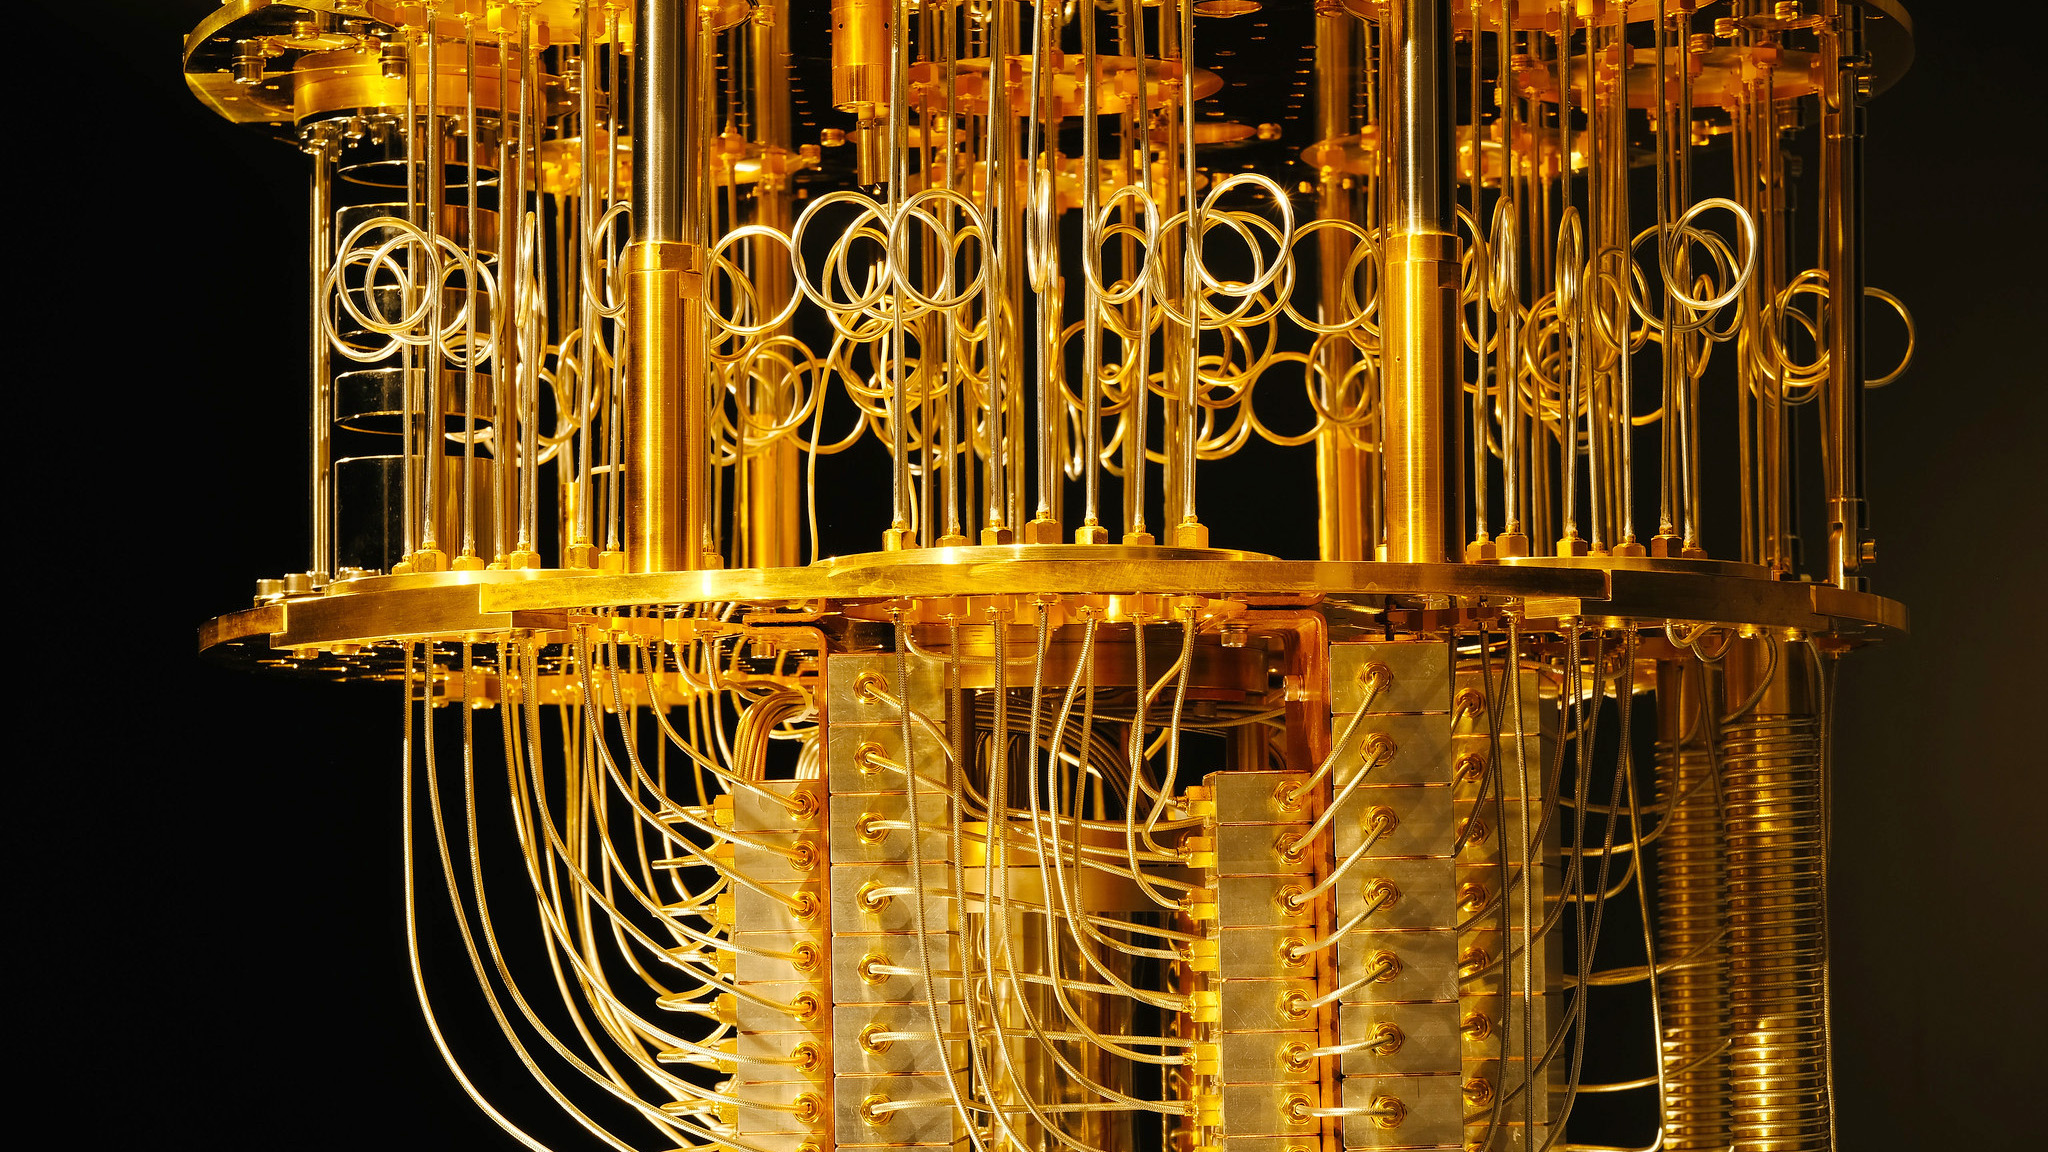 Refrigeration coils keep the quantum computer at sub zero temperatures.